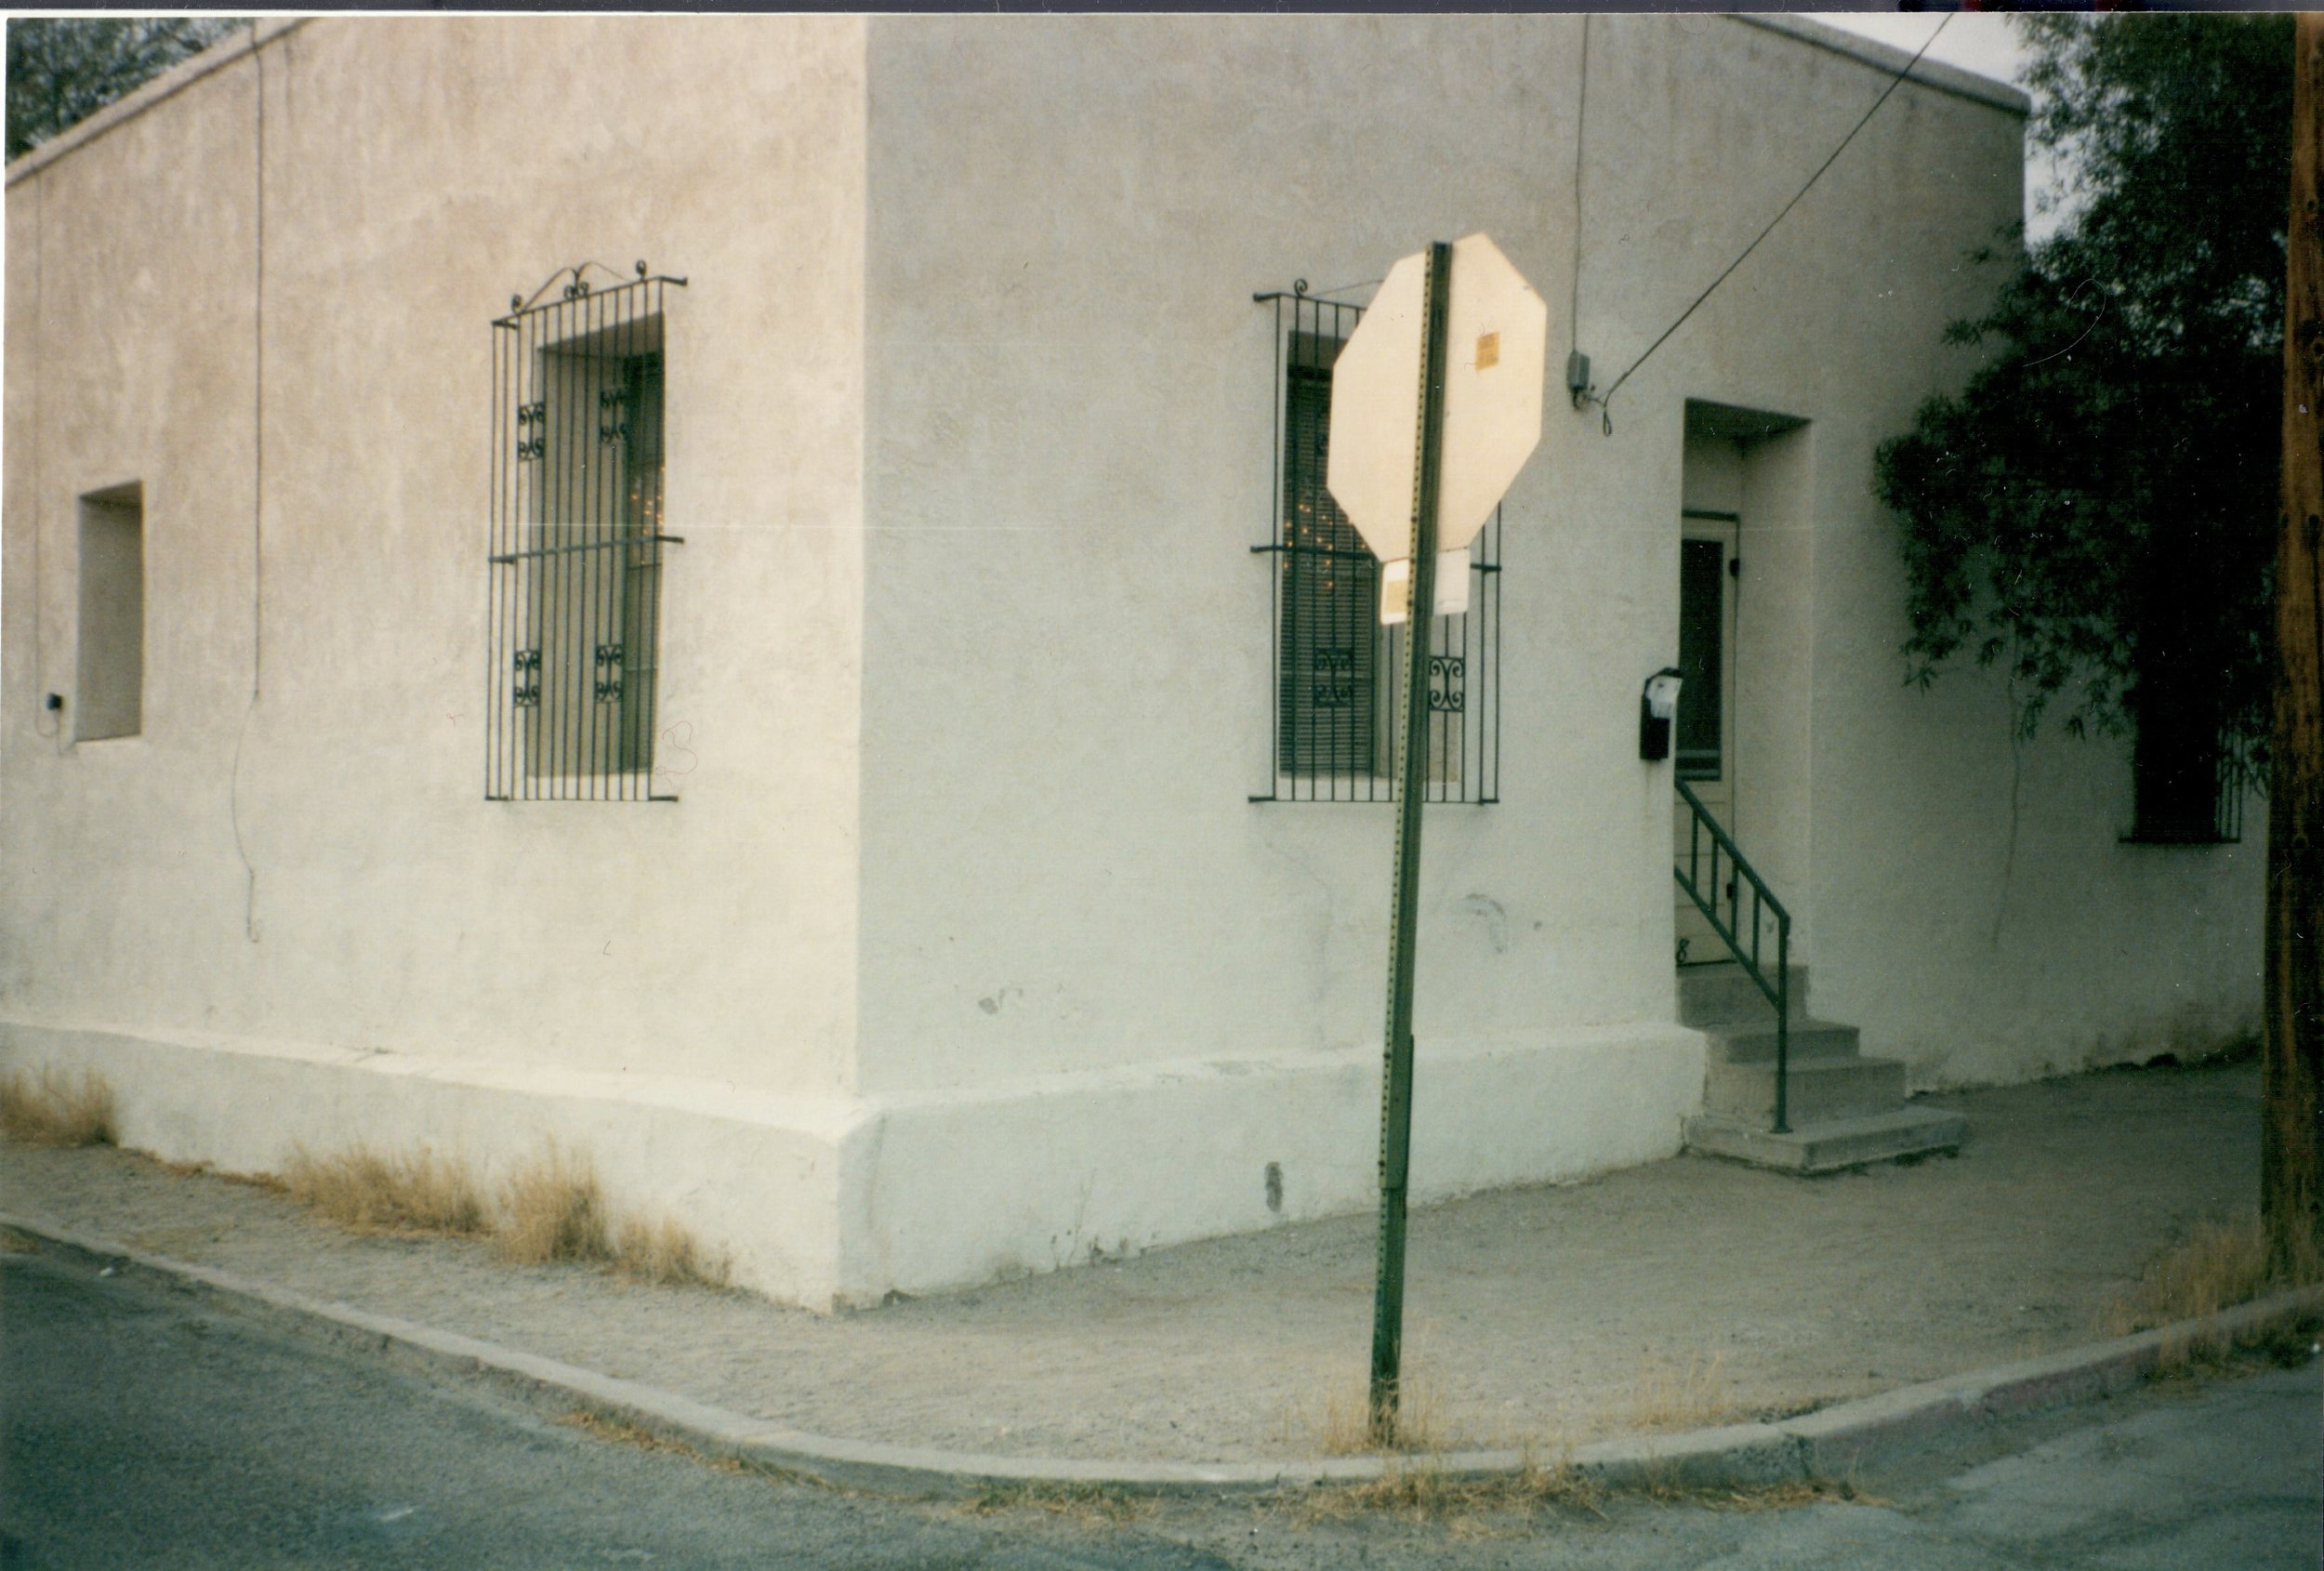 418 S. Convent was owned by the same family for about 70 years. As I recall, this was near the end of their ownership. Dec. 31, 1999.